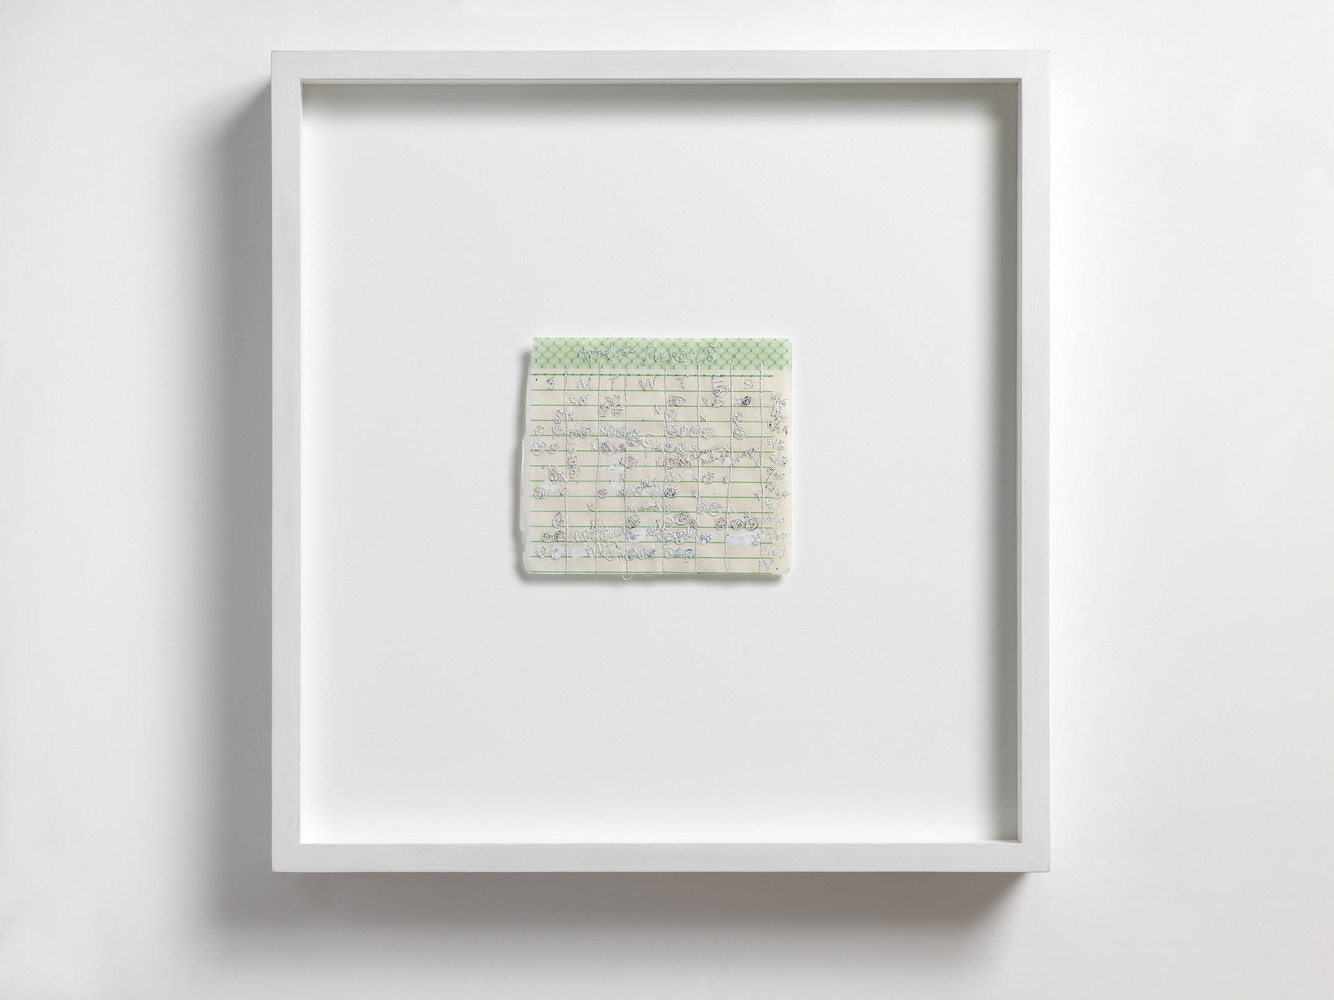 Nicola Ginzel  ARTWORK  overview hand written schedule, embroidered with thread by hand